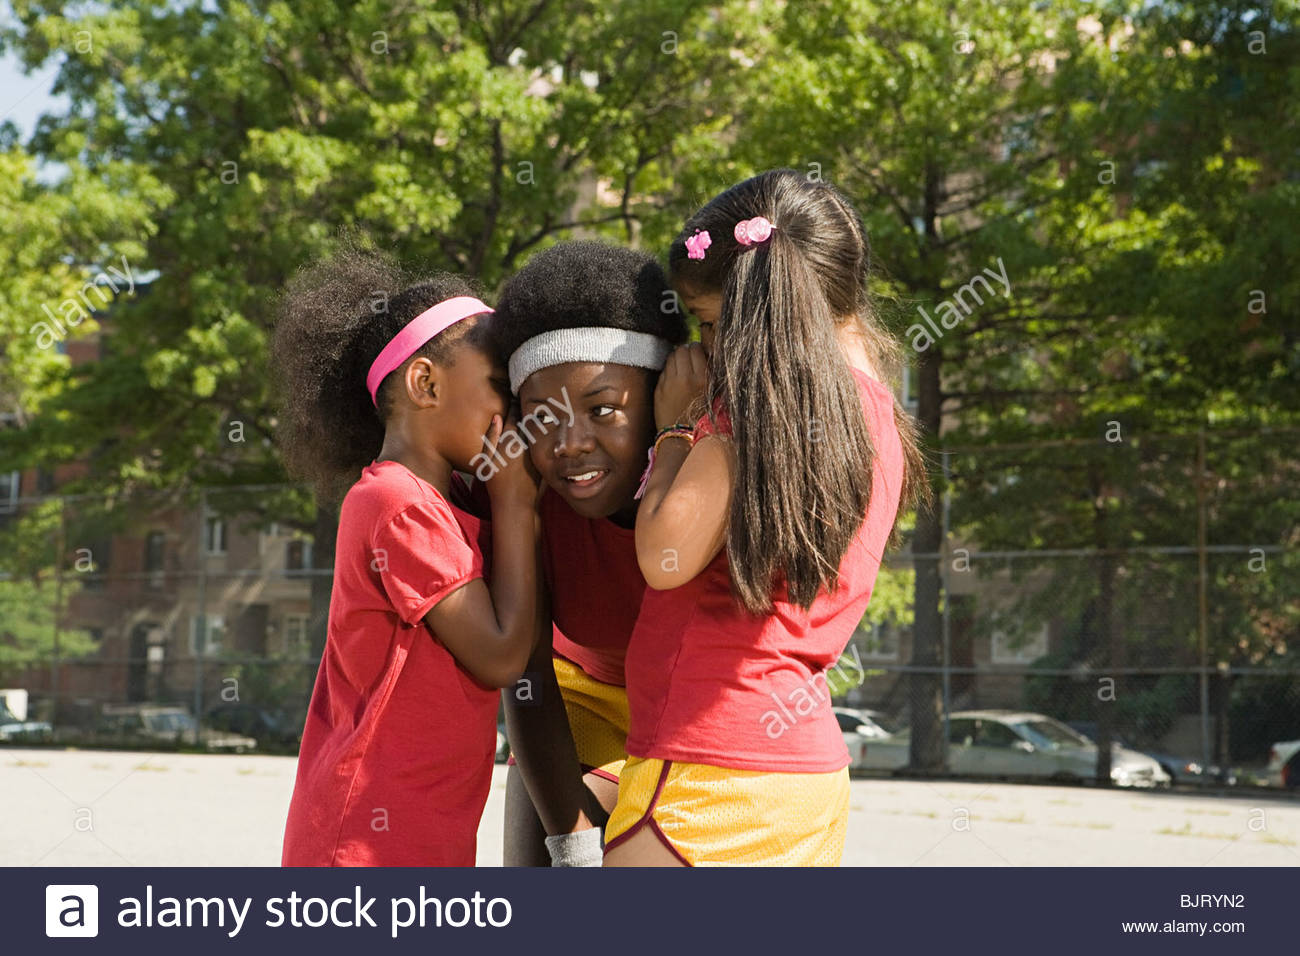 Girls whispering - Stock Image